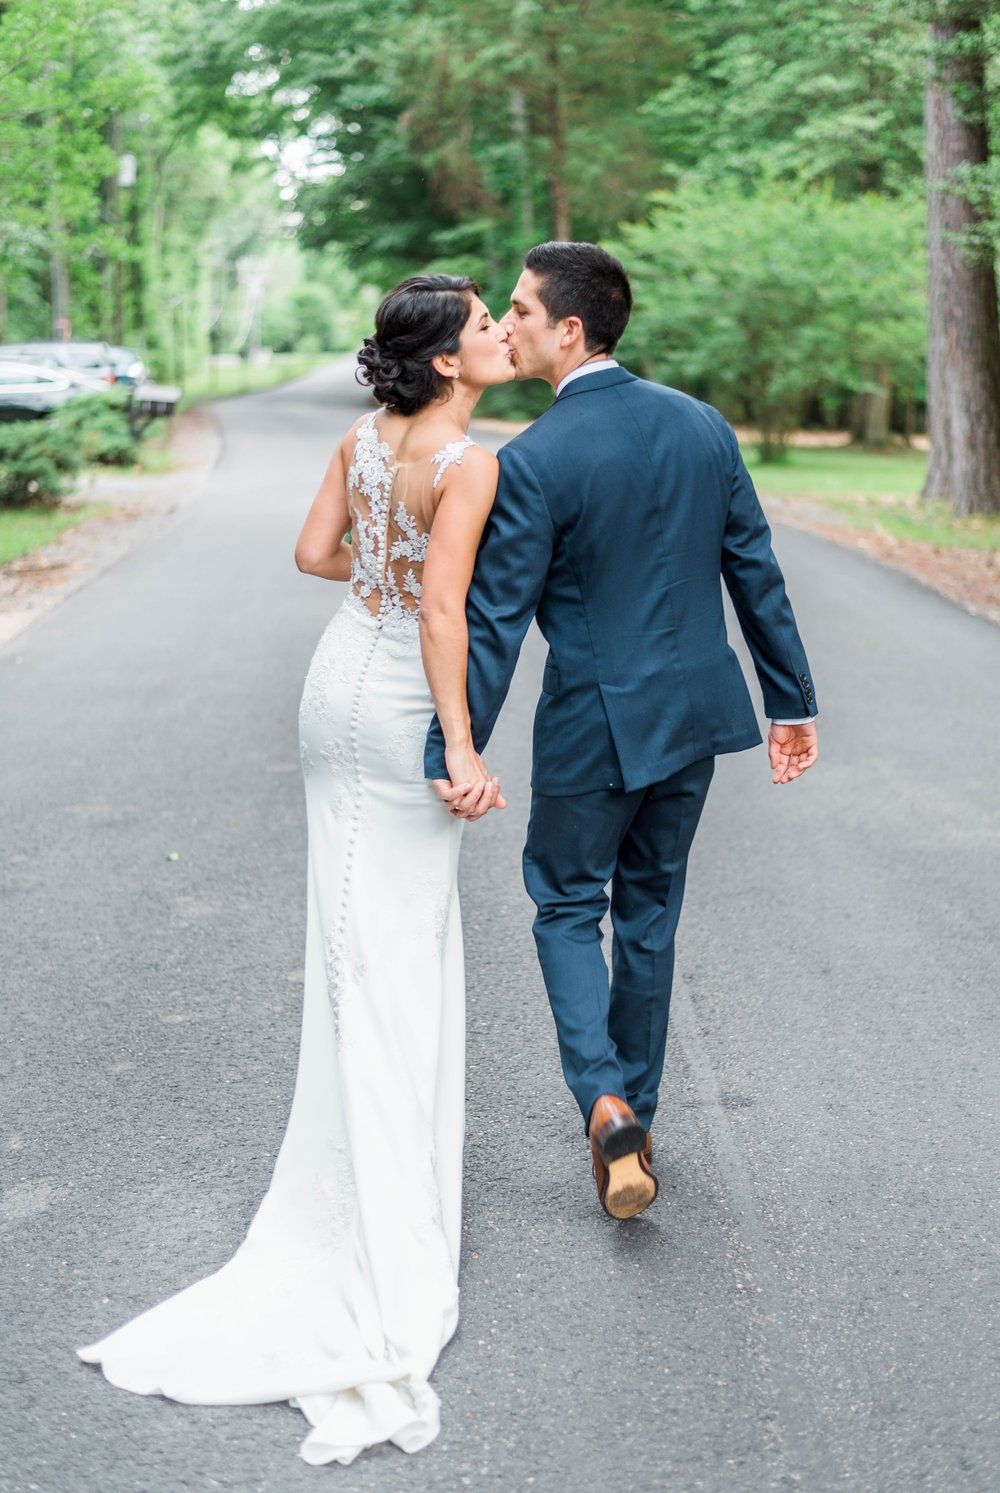 Williamsburgvawedding_backyardwedding_virginiaweddingphotographer_lynchburgweddingphotographer_PaulAliya 29.jpg